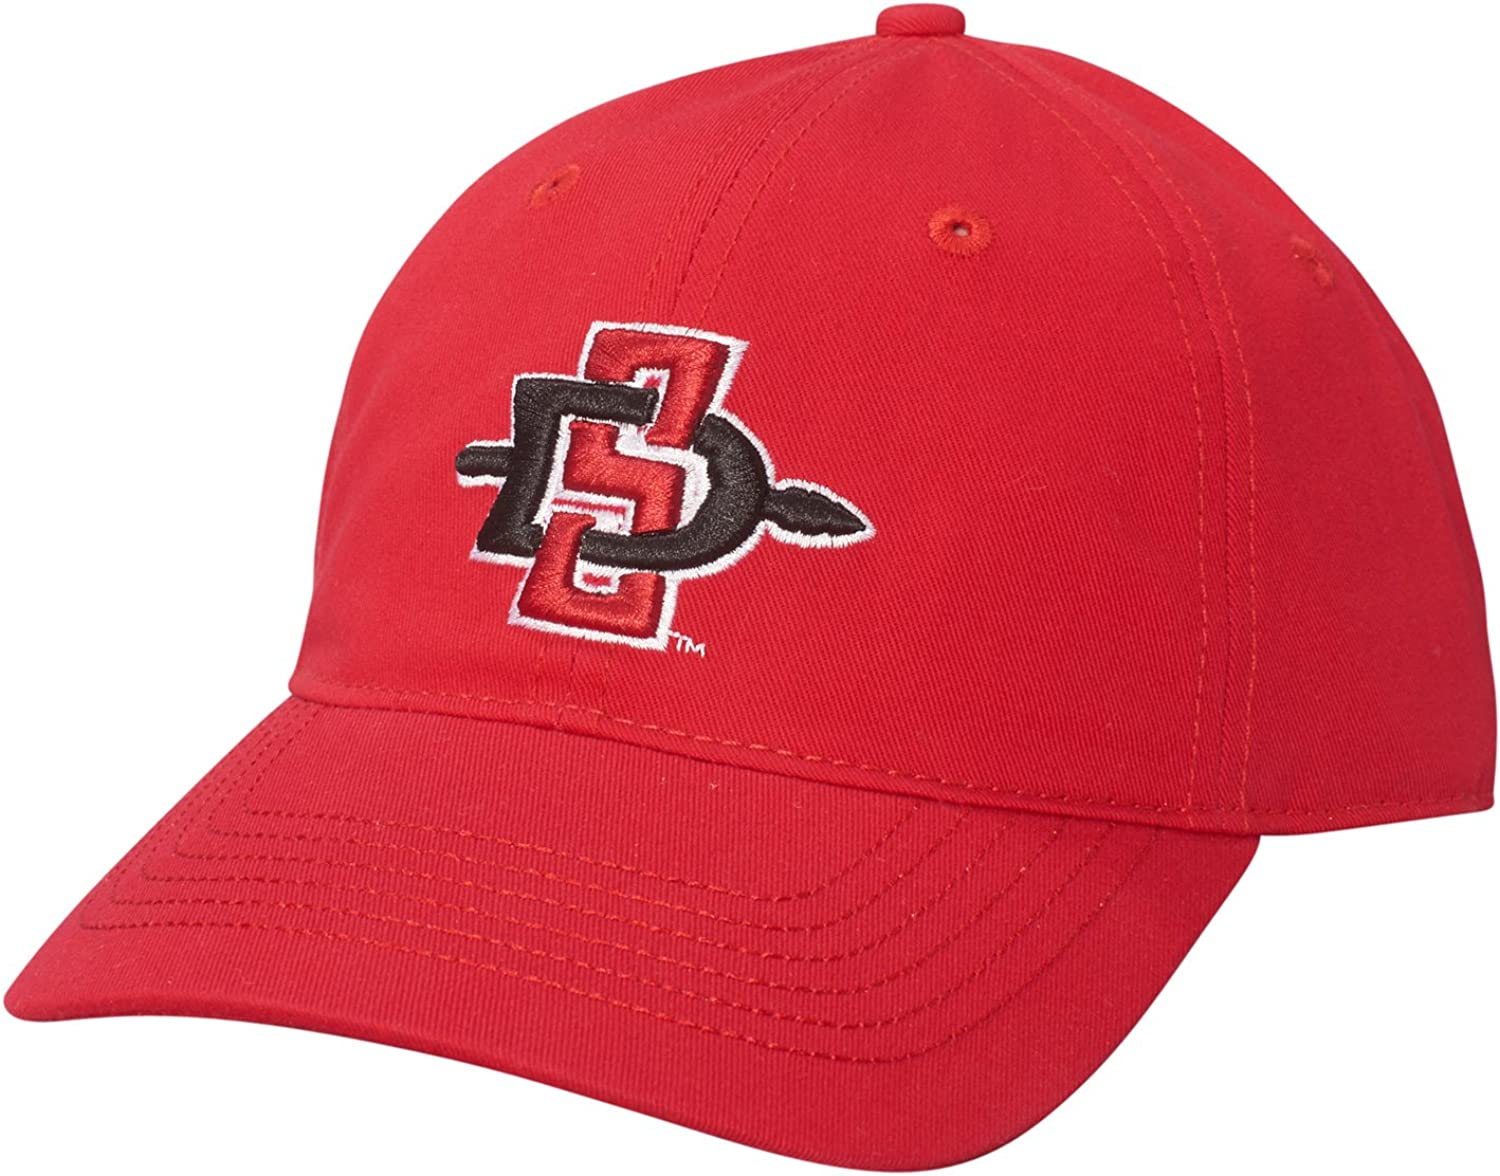 NCAA Adult-Men Epic Washed Twill Cap